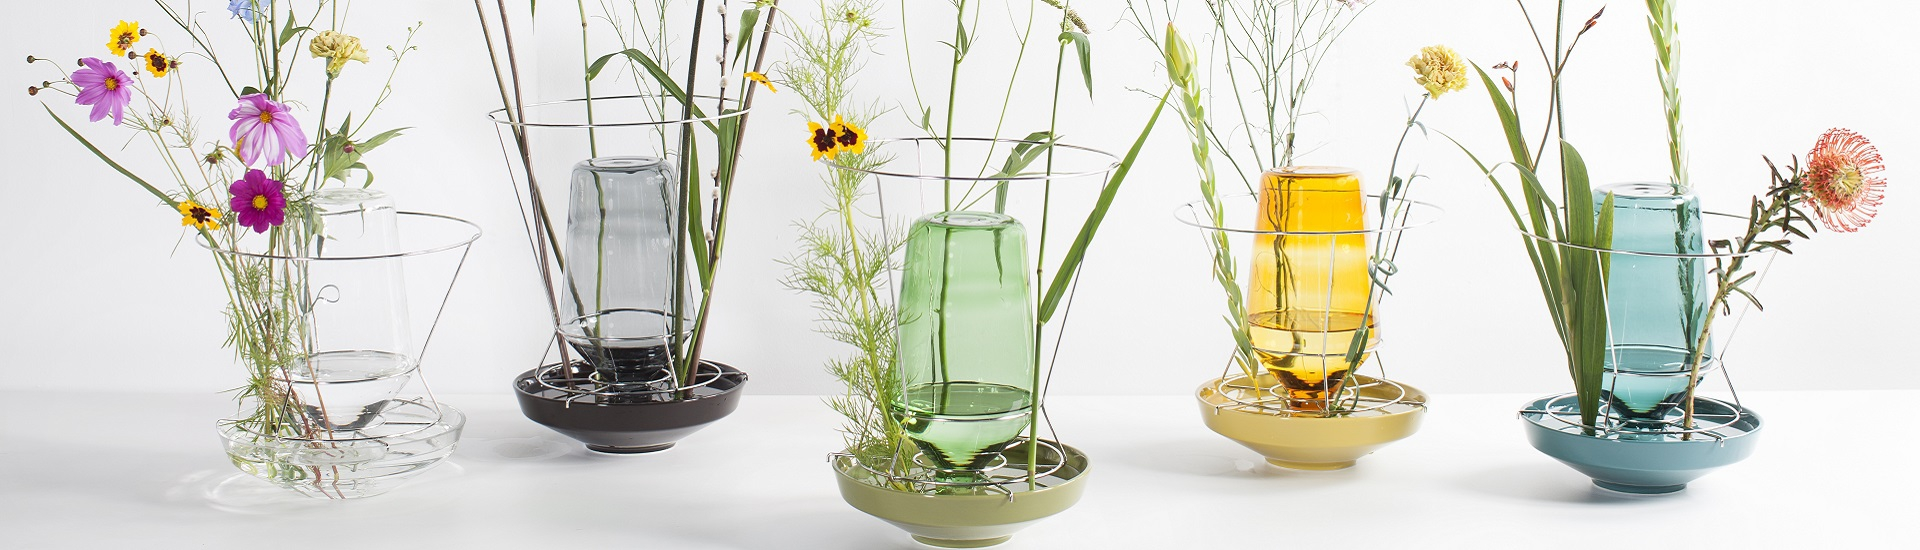 hidden vases by chris kabel